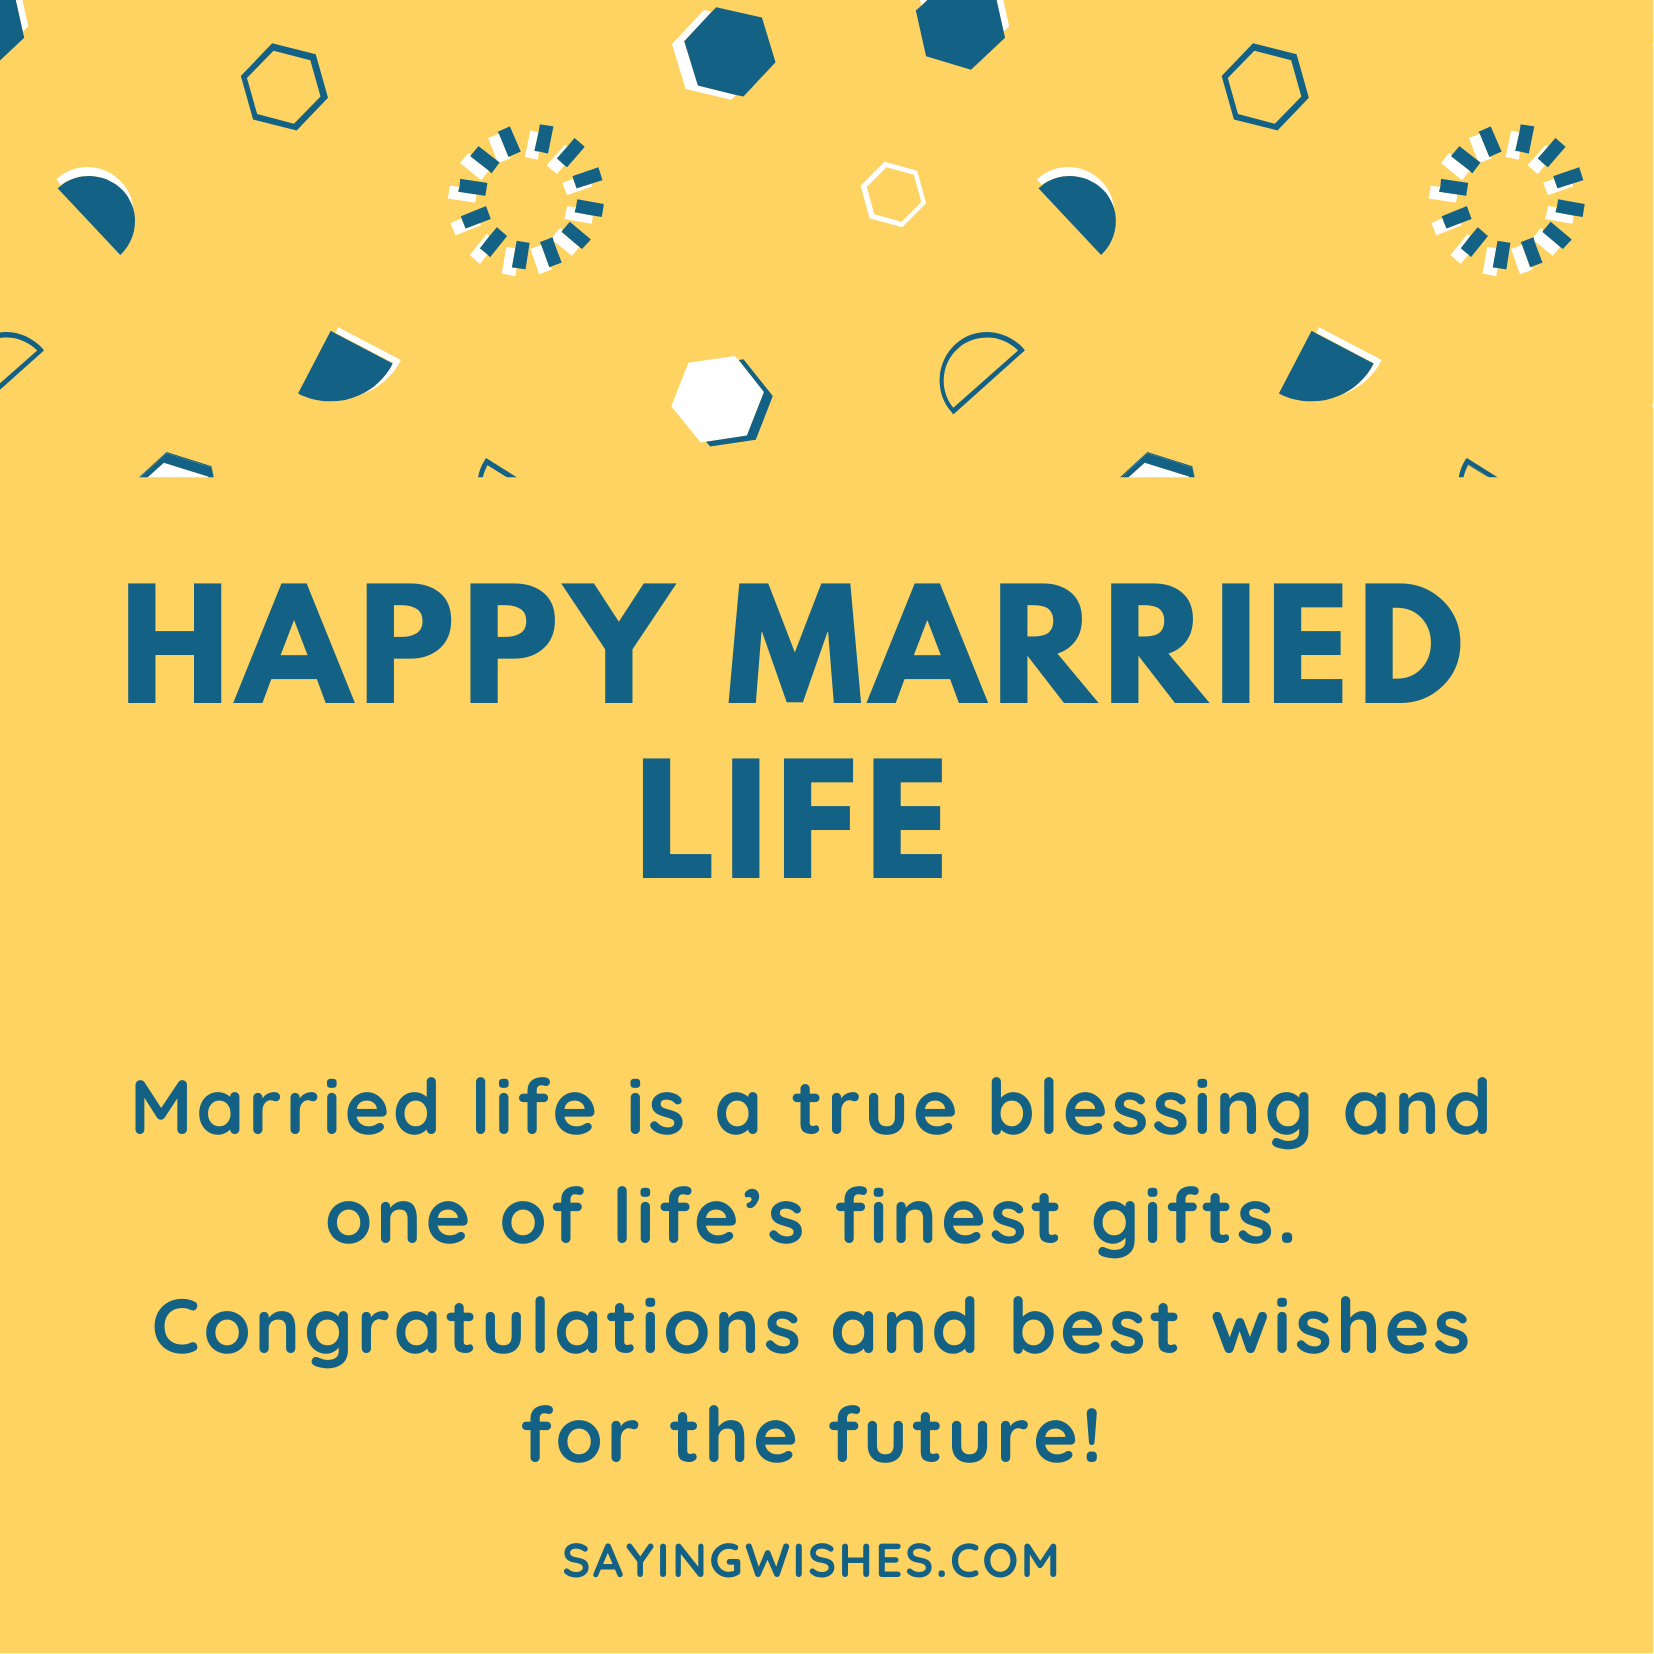 happy married life sayings to couple